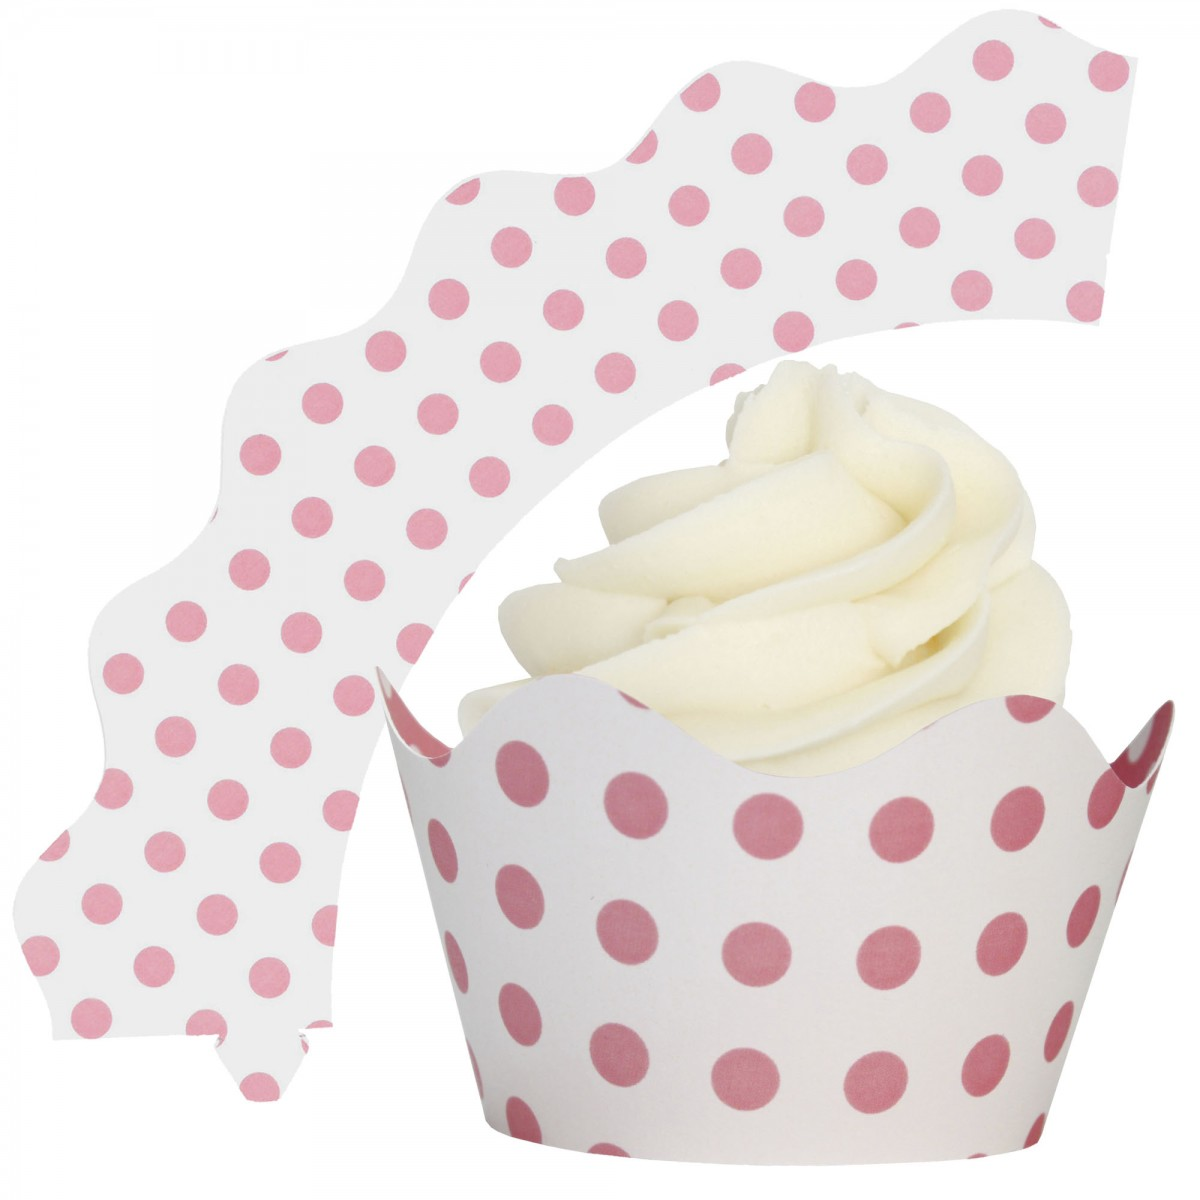 Set of 12 Light Pink Polka Dot Cupcake Wrappers Standard and Mini Sized Holders